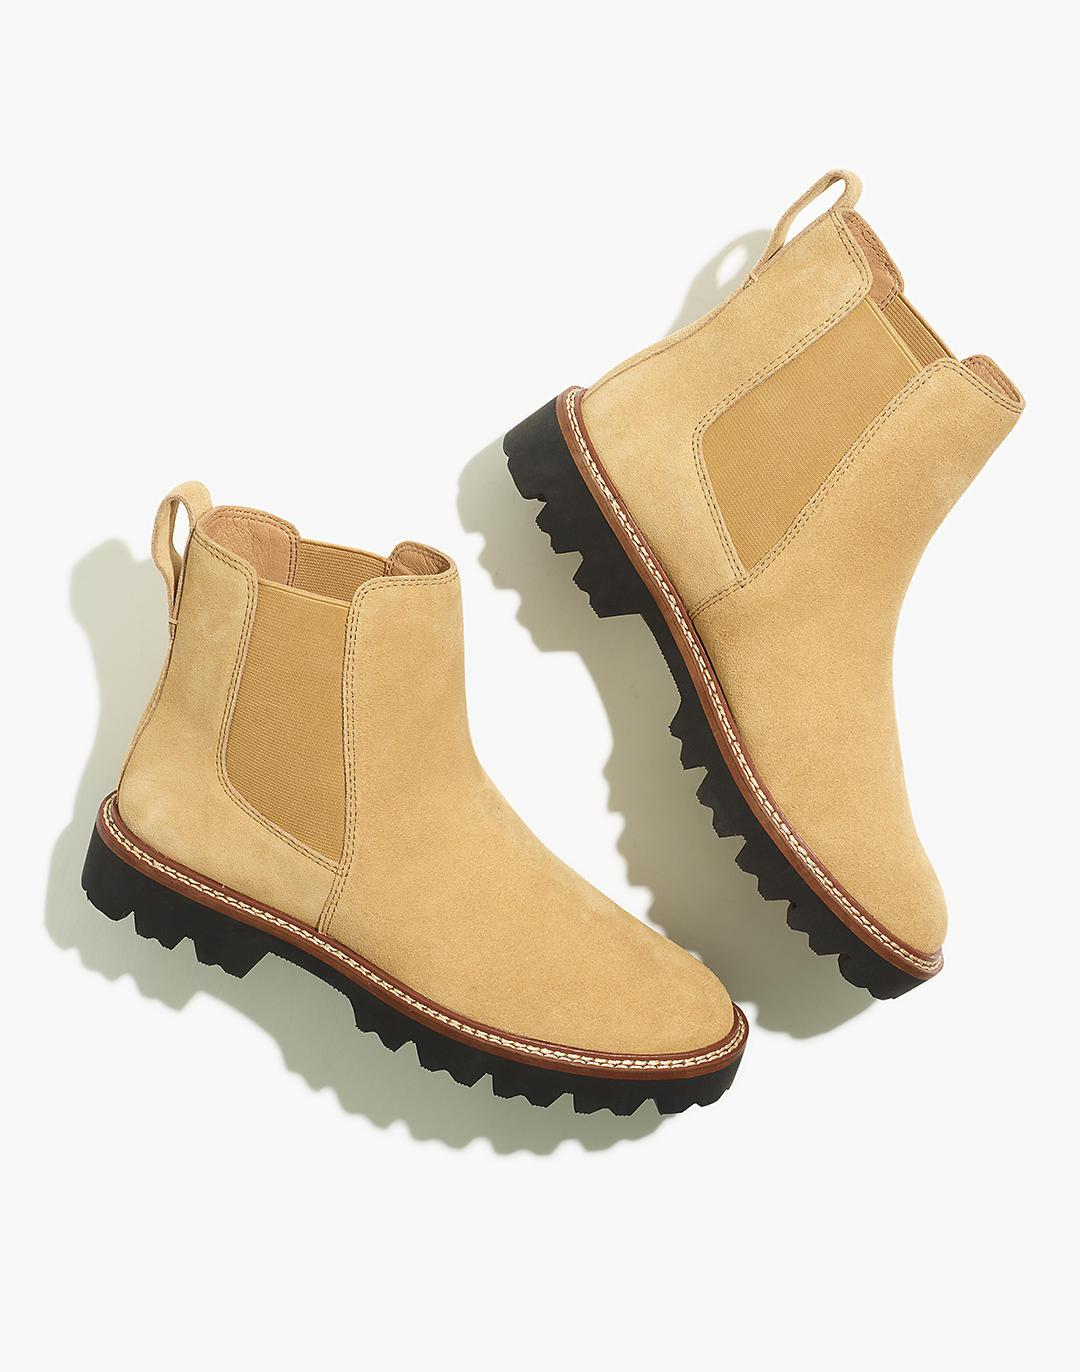 The Citywalk Lugsole Chelsea Boot in Suede